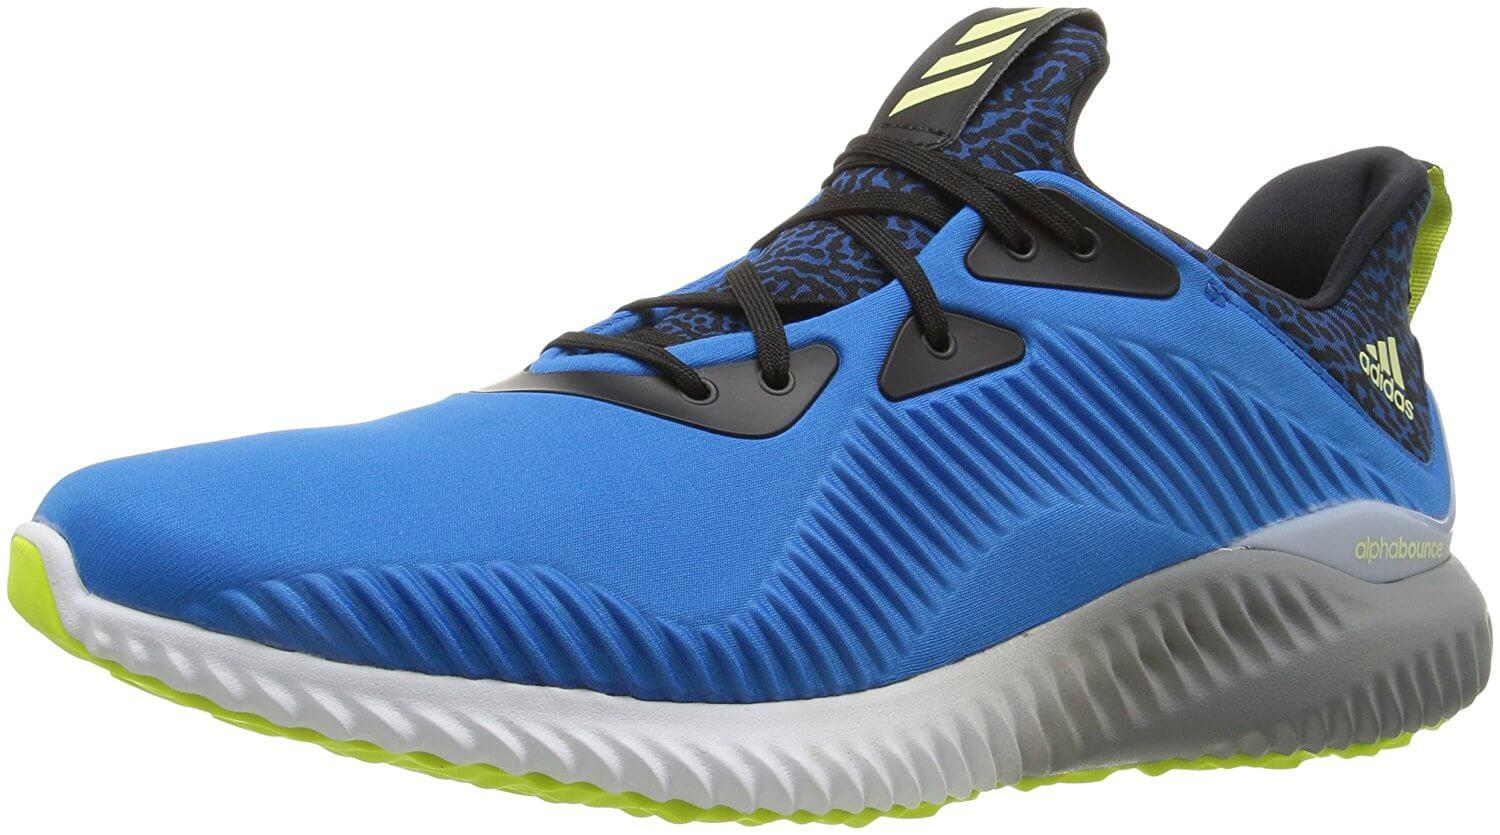 e8928008f321b Adidas Alphabounce Reviewed - To Buy or Not in May 2019